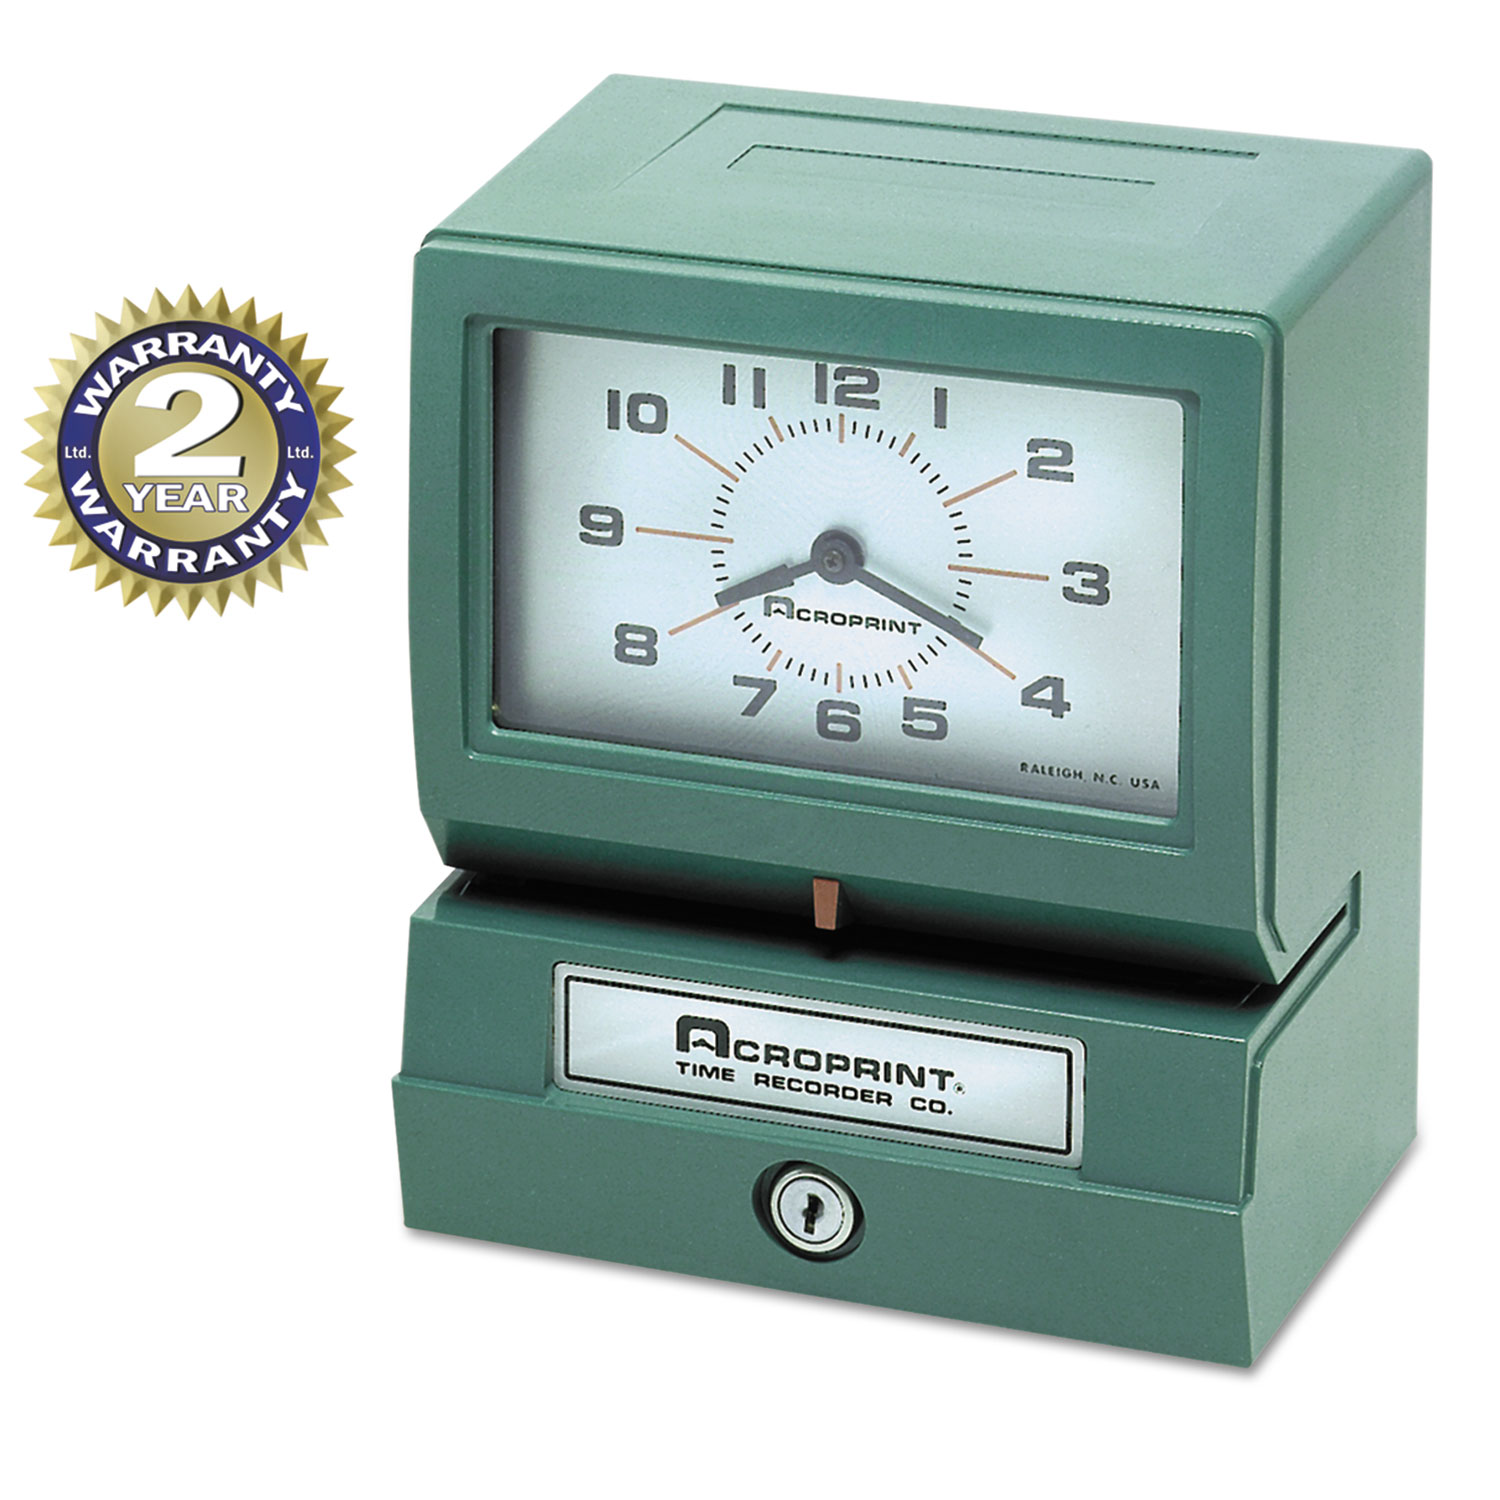 Model 150 Analog Automatic Print Time Clock with Month/Date/0-23 Hours/Minutes